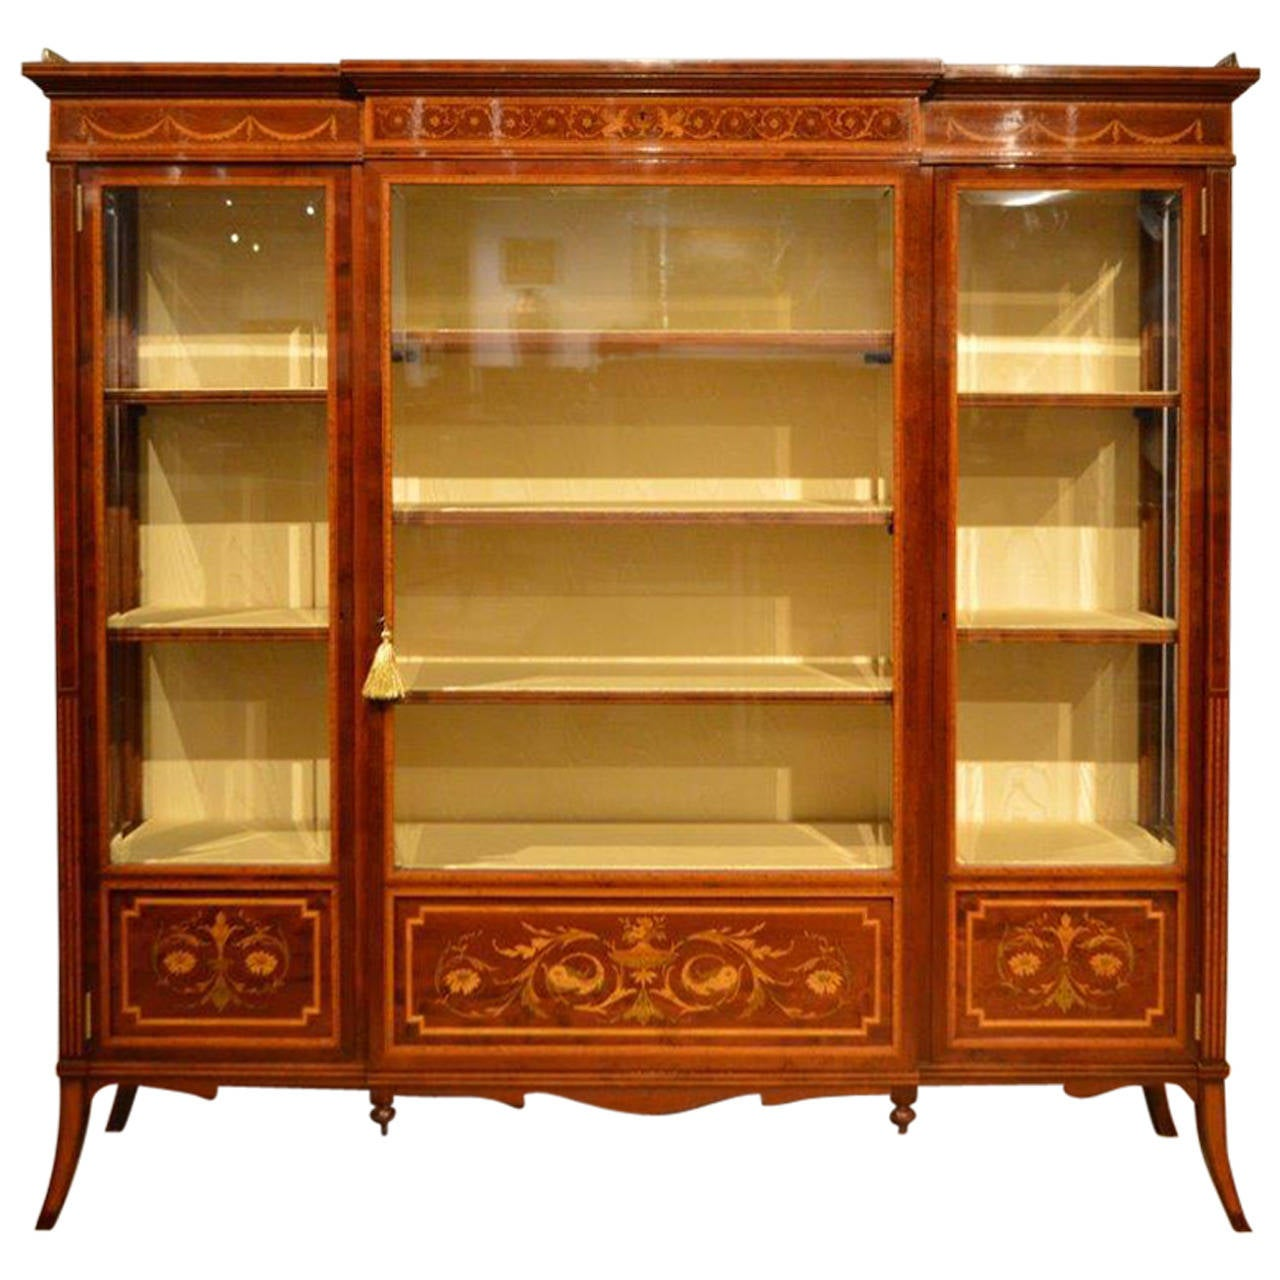 Mahogany Inlaid Antique Display Cabinet by Edwards and